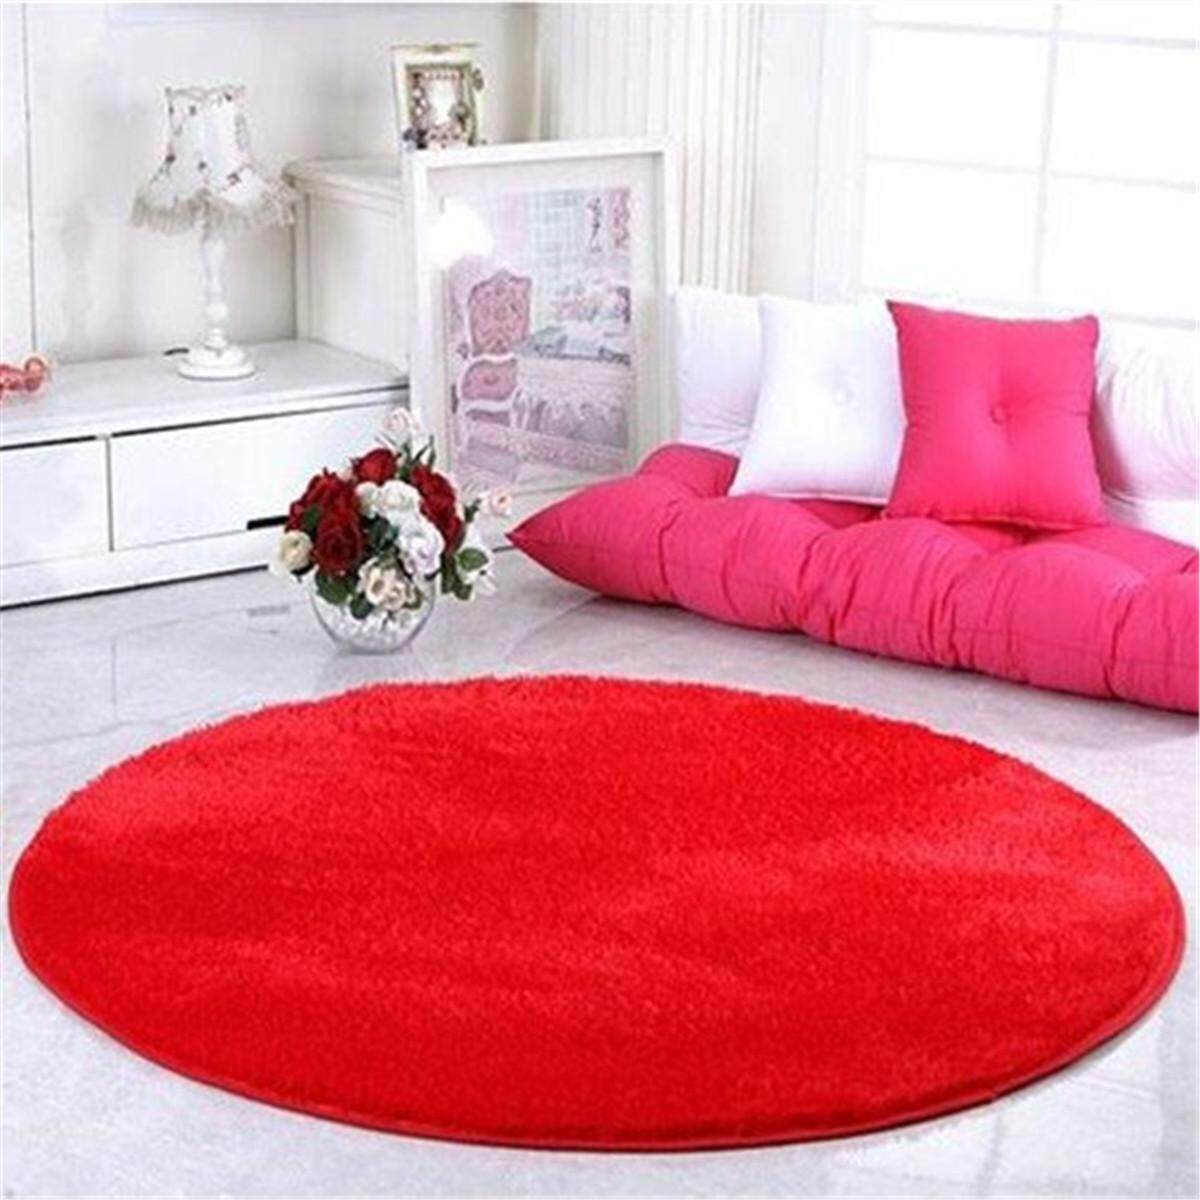 Red Anti-Skid Fluffy Shaggy Area Rug Home Living Room Carpet Floor Round Mats#100cm